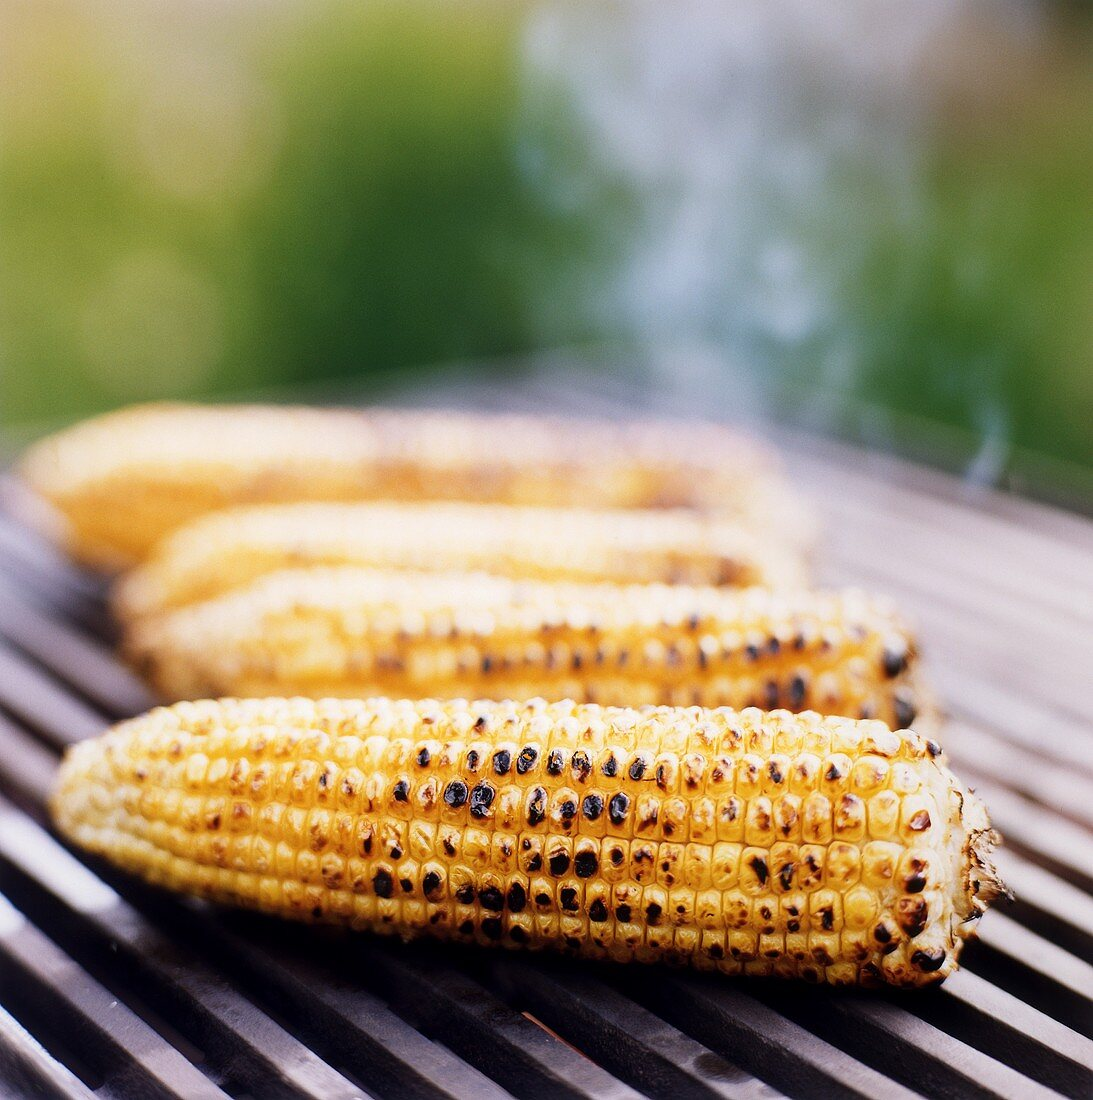 Four corncobs on a barbecue